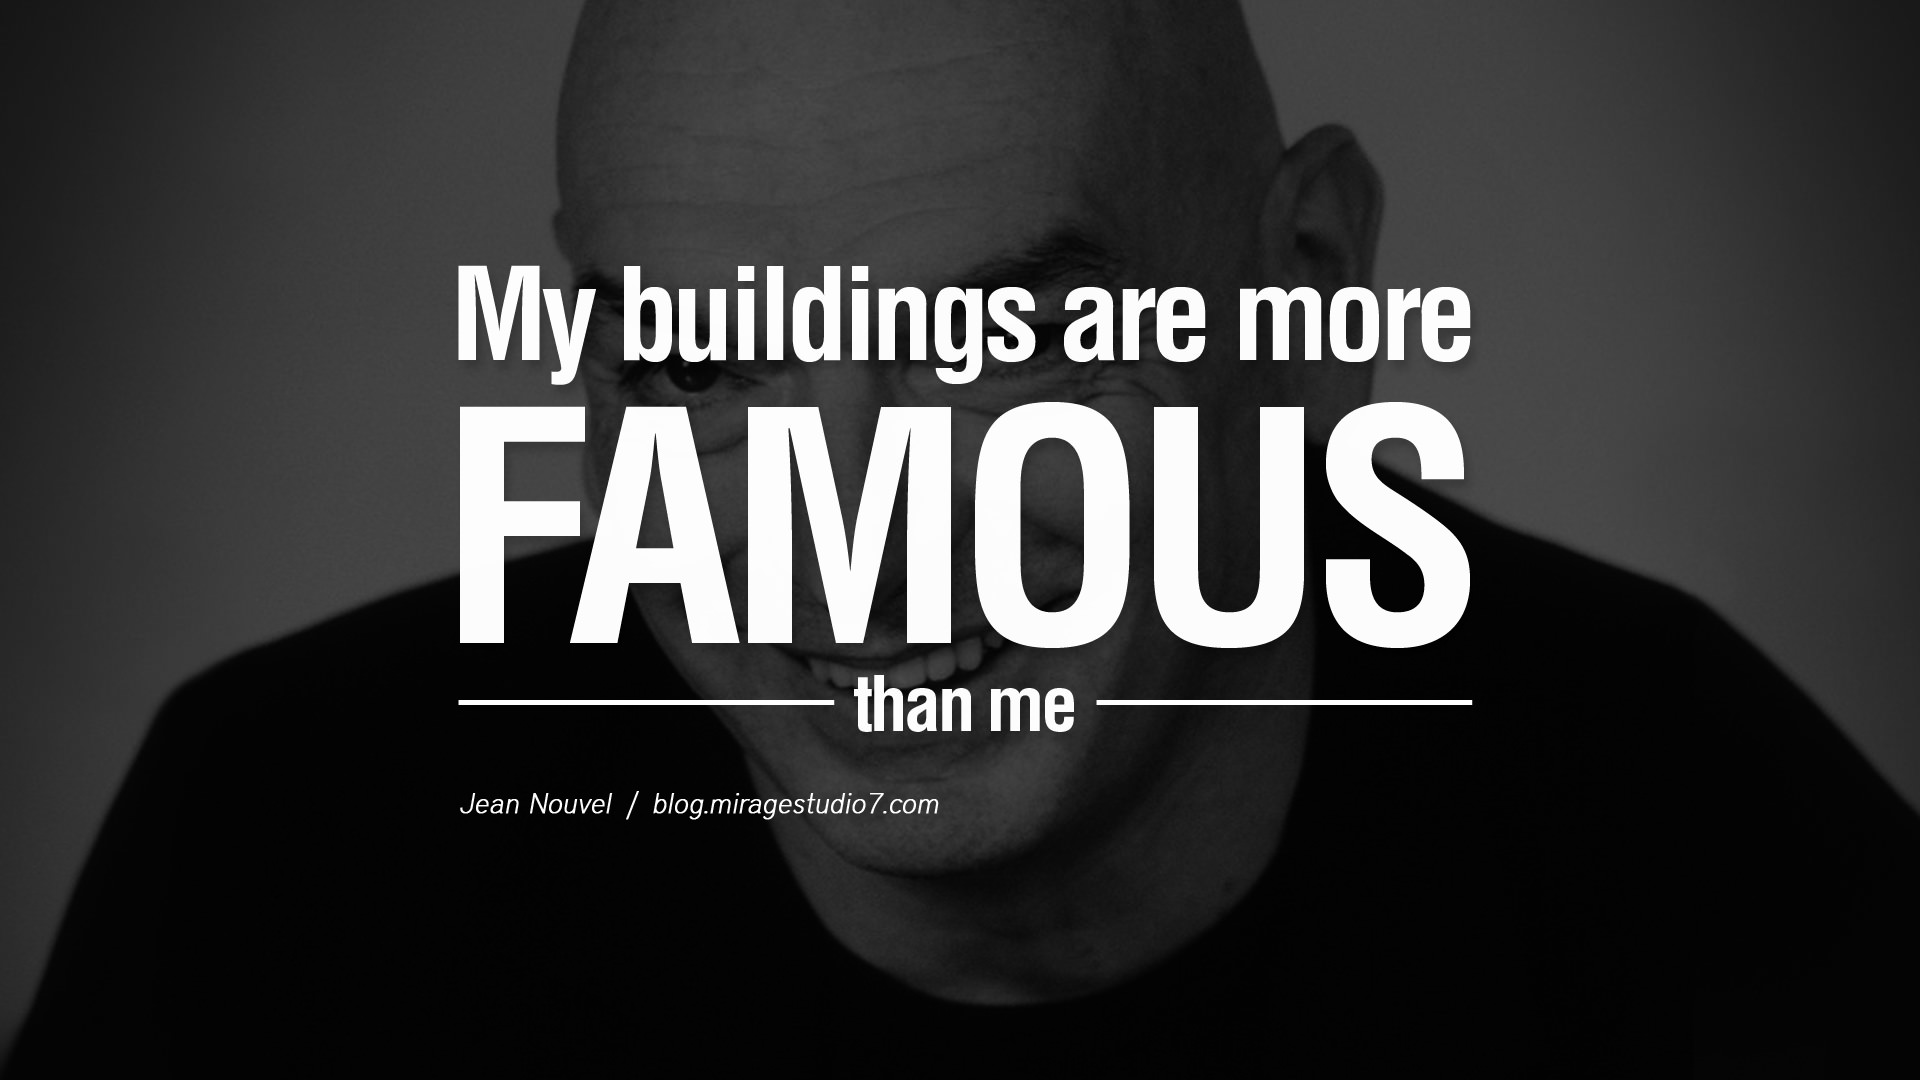 quotes architecture famous architects quote jean nouvel inspirational buildings building architect wallpapers funny they quotesgram sayings speak legacy student gehry